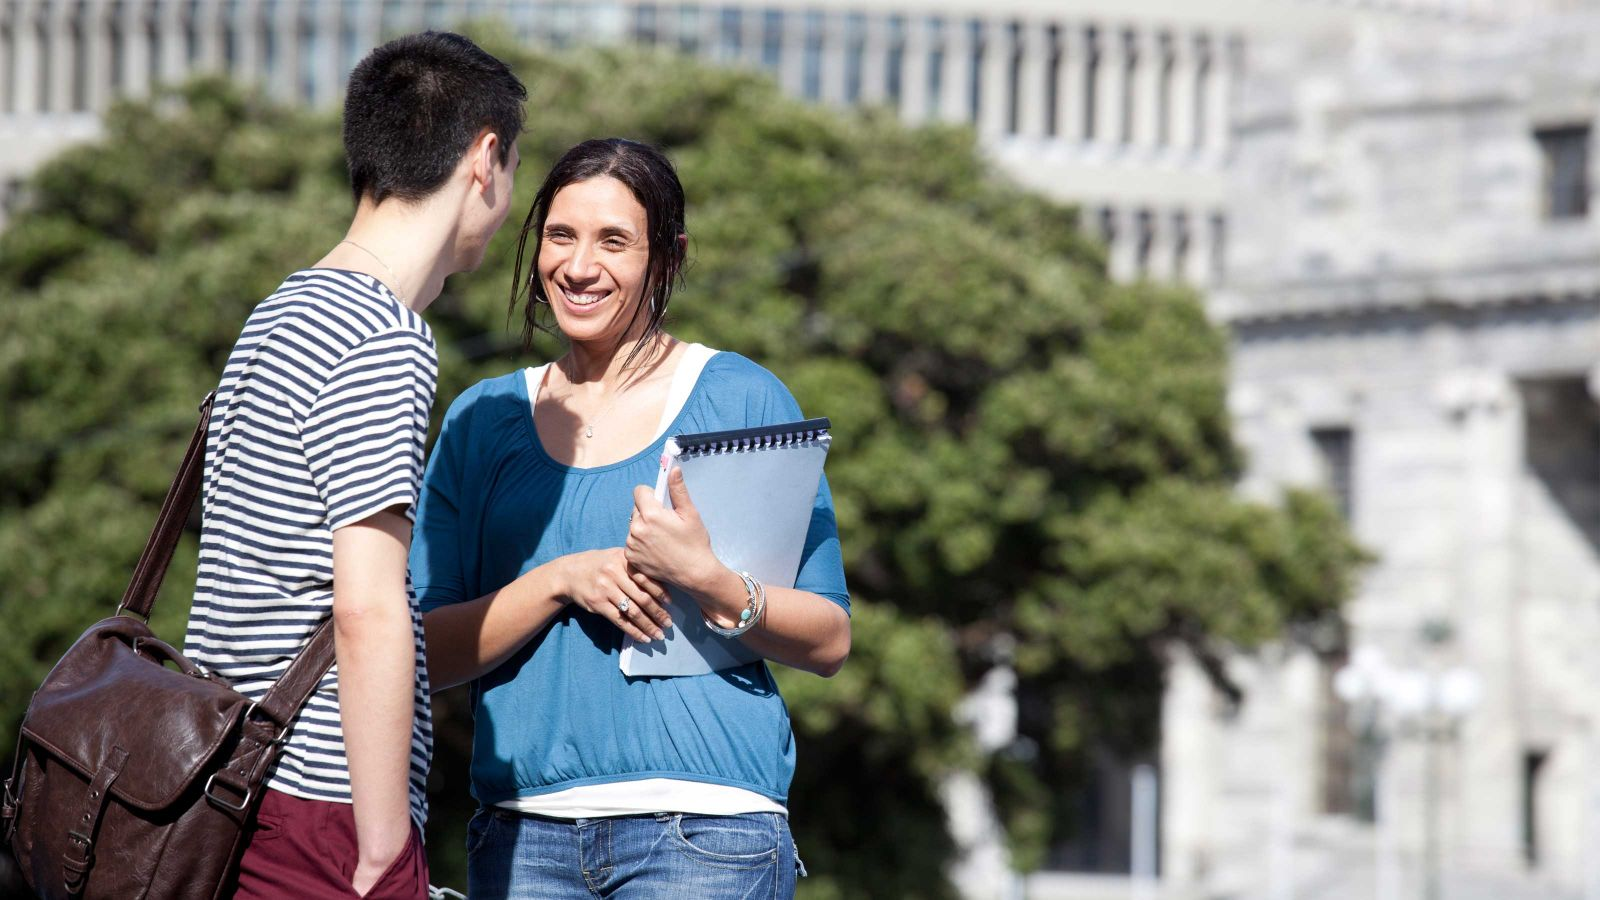 Future Maori students enjoying a conversation outside on a sunny day with grey stone buildings in the background.